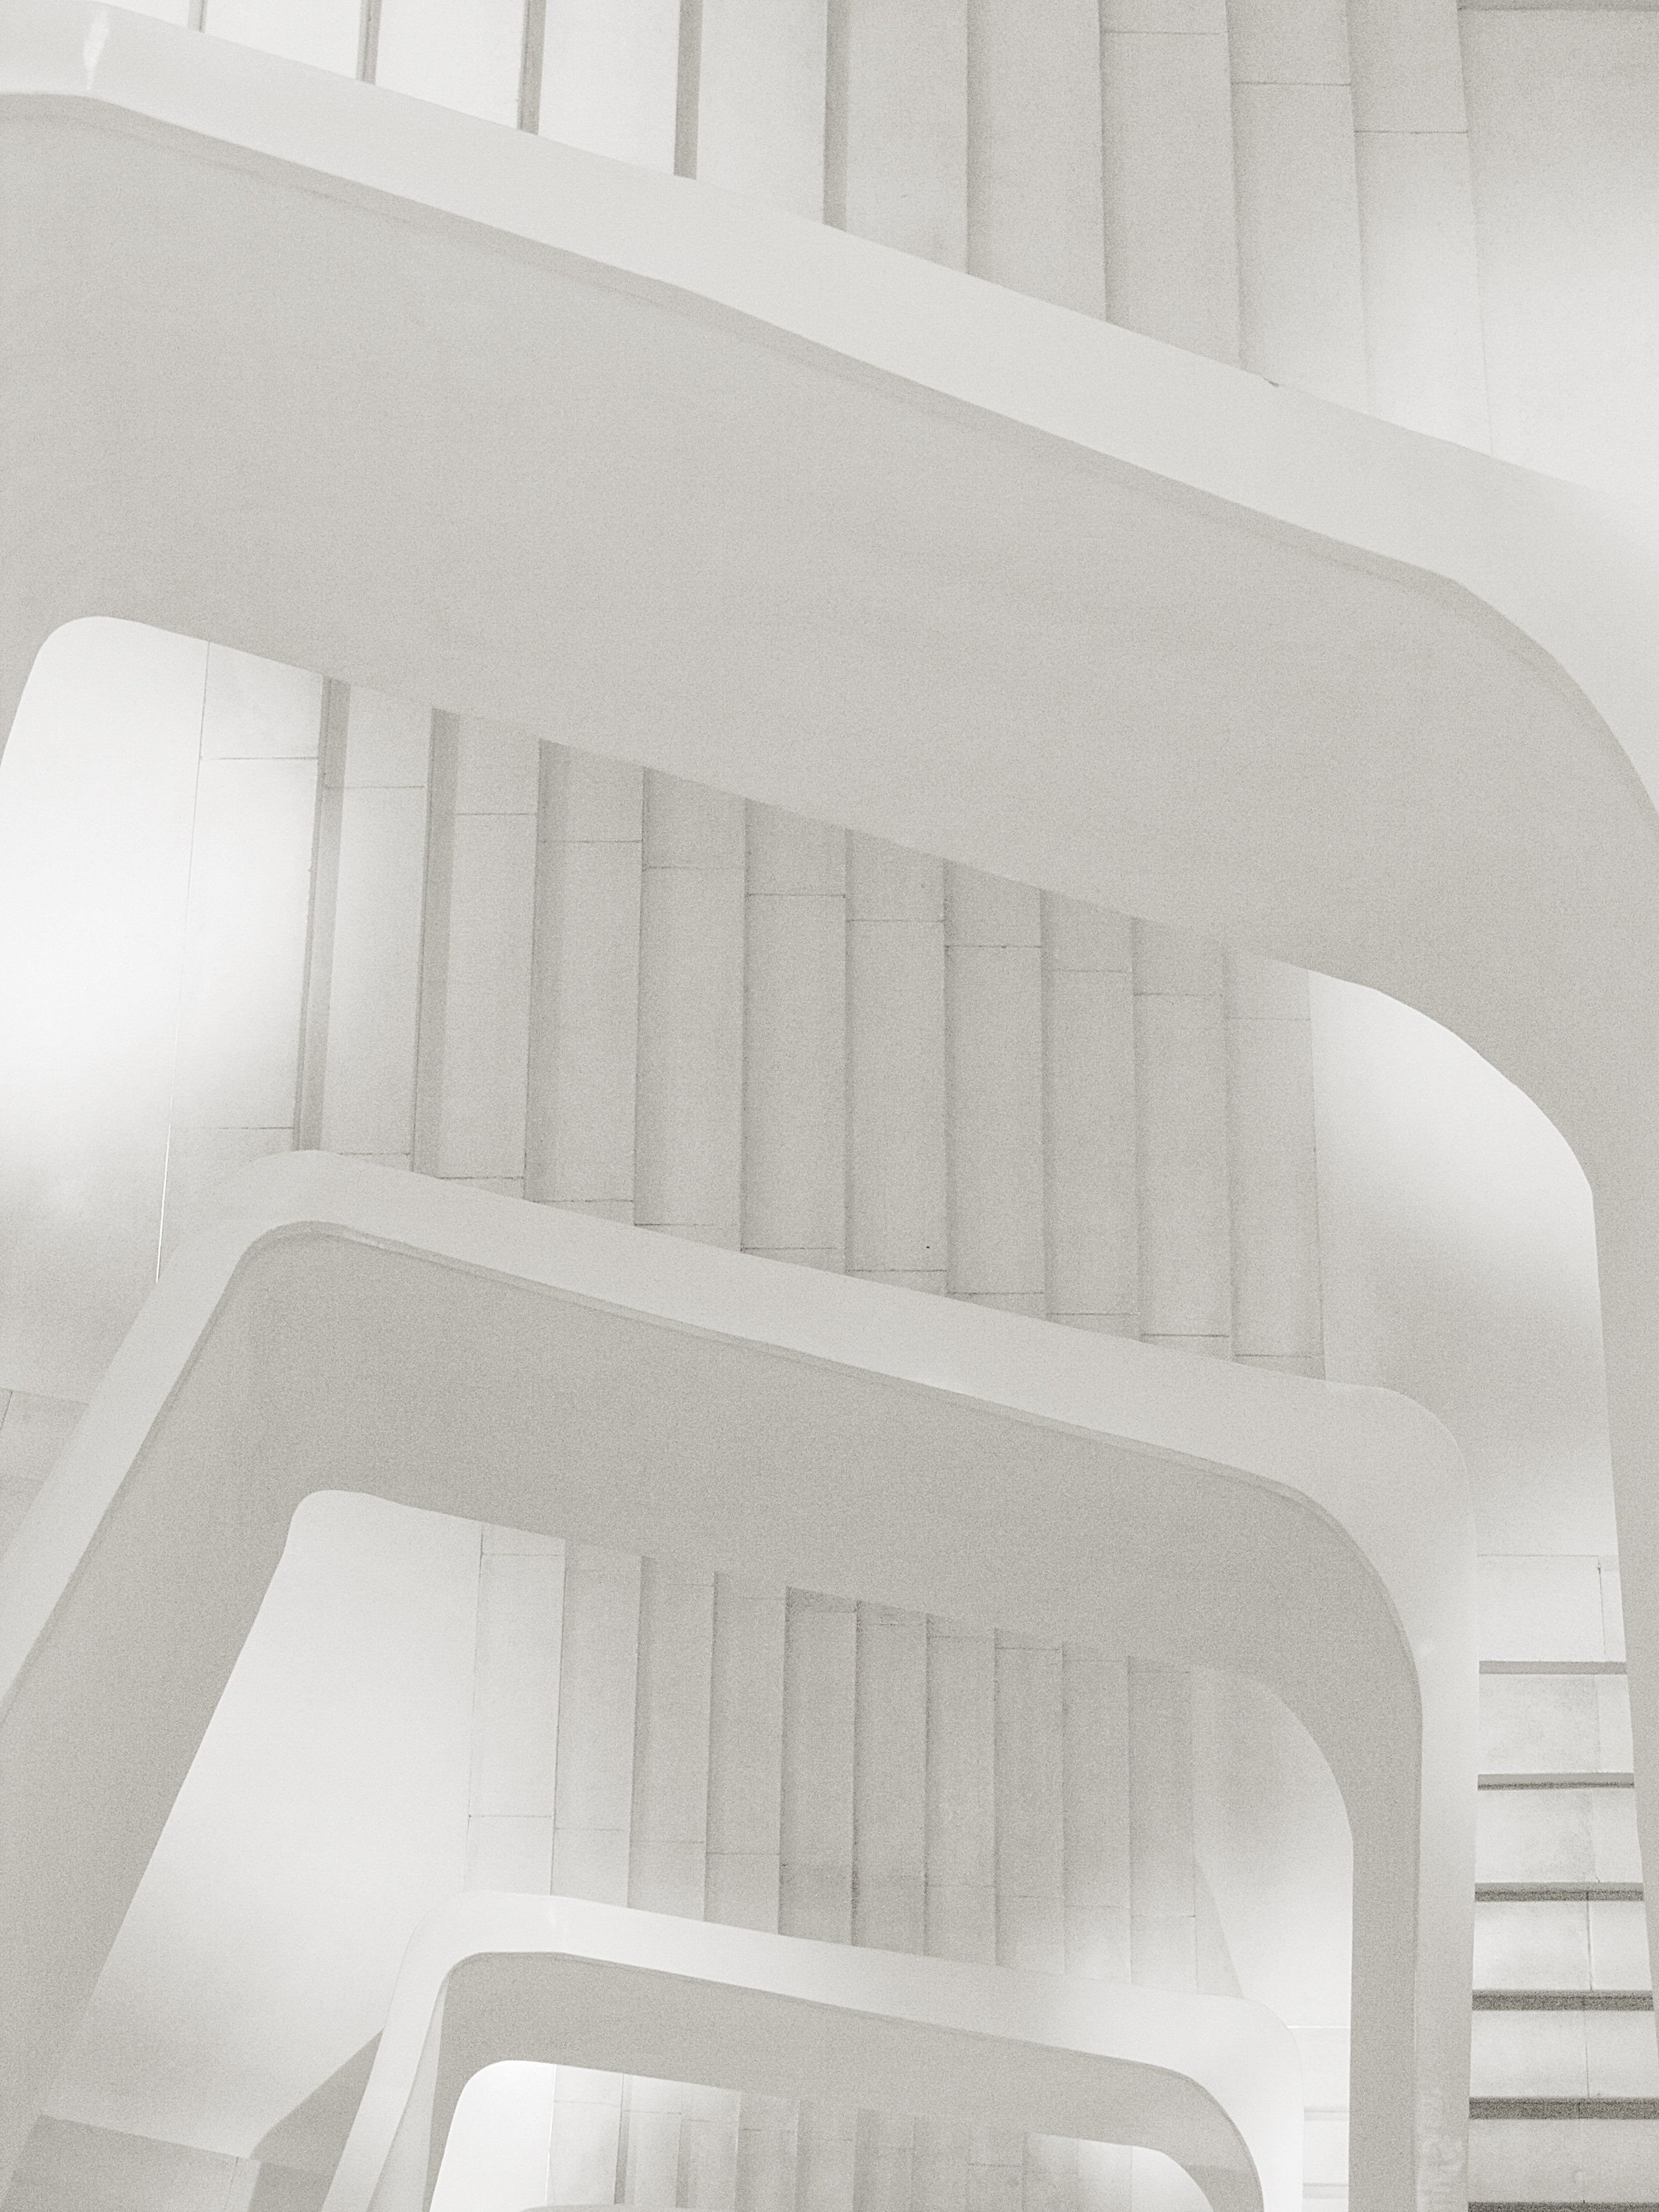 The White Stairs by Manolo Toledo - Downloaded from 500px.jpg